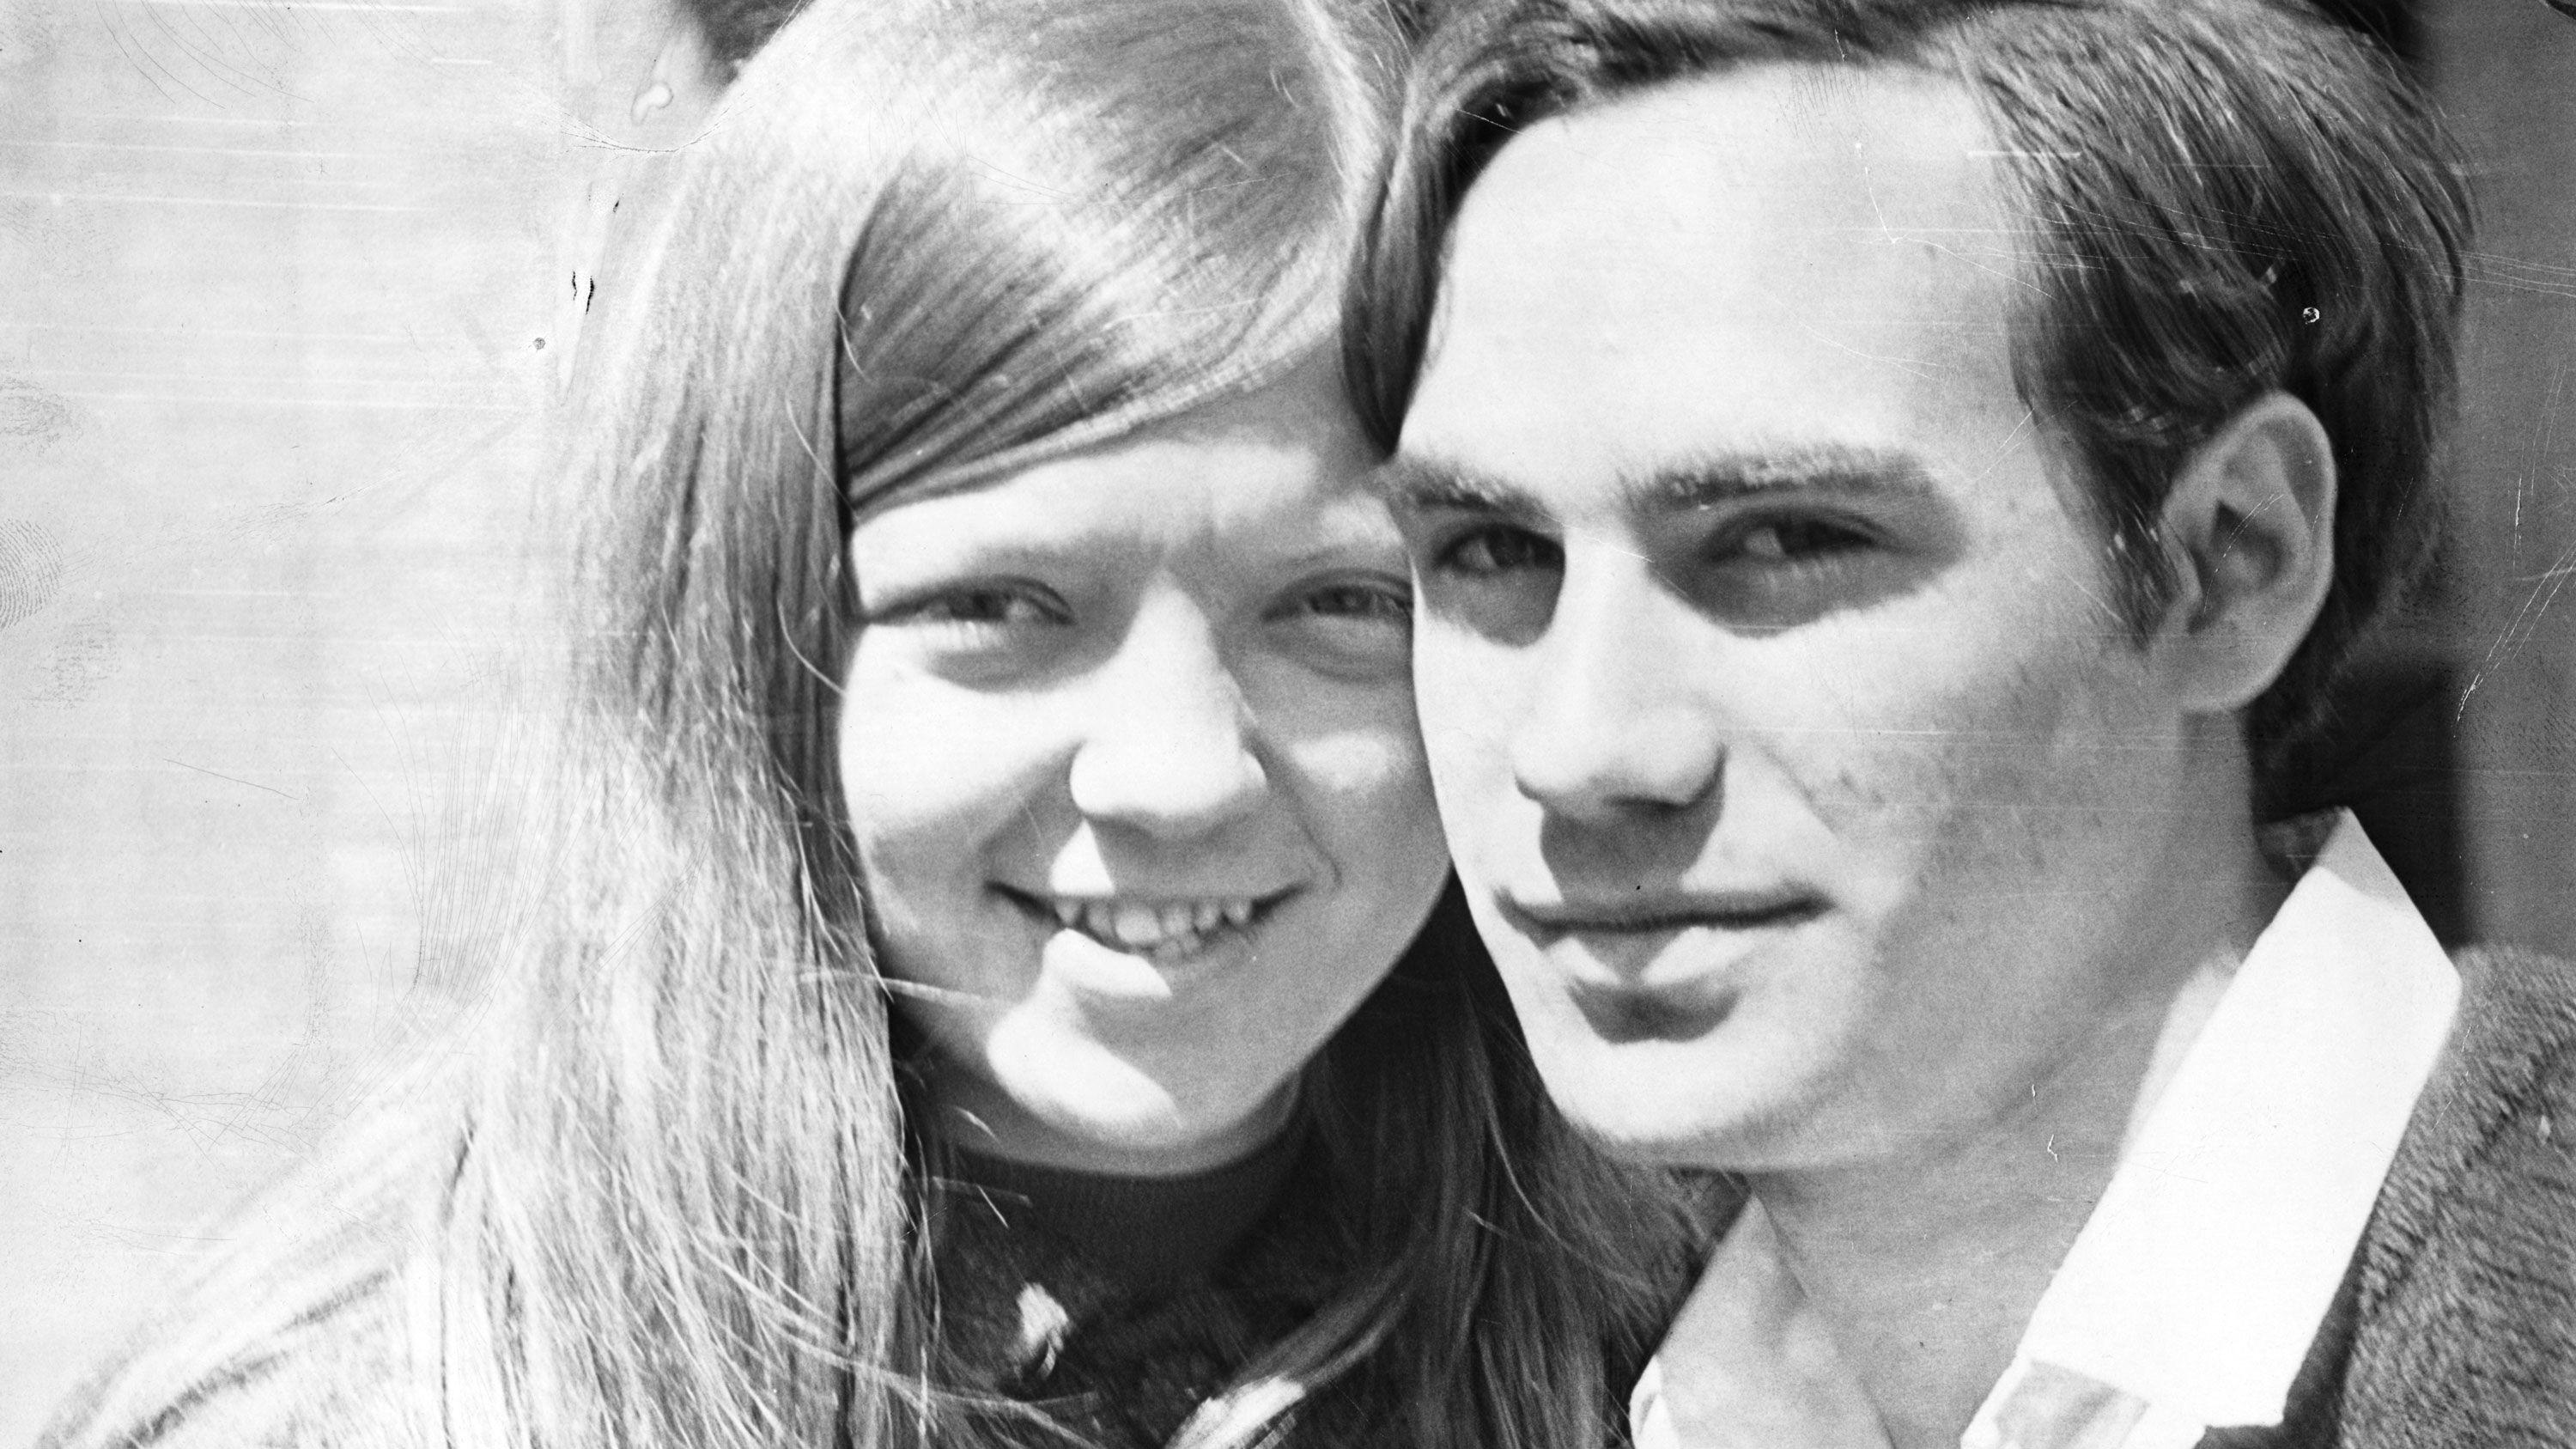 A College Student Became a '60s Sexual Revolution Icon by Moving in With Her Boyfriend